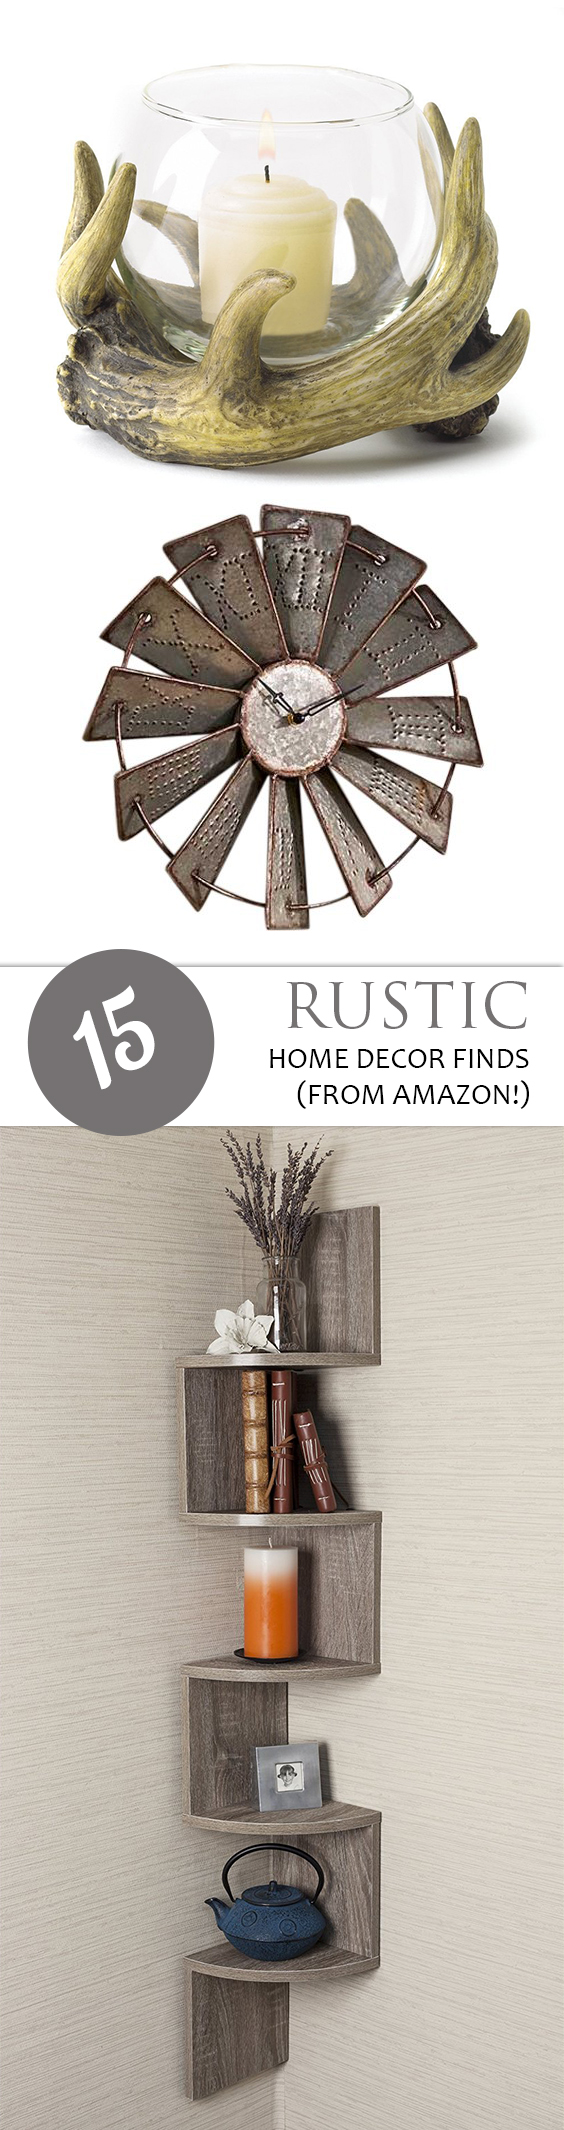 Rustic Home Decor, Cheap Decor, Inexpensive Home Decor, Farmhouse Decor Trend, Farmhouse Home Decor, Farmhouse Home Decor Ideas, Popular